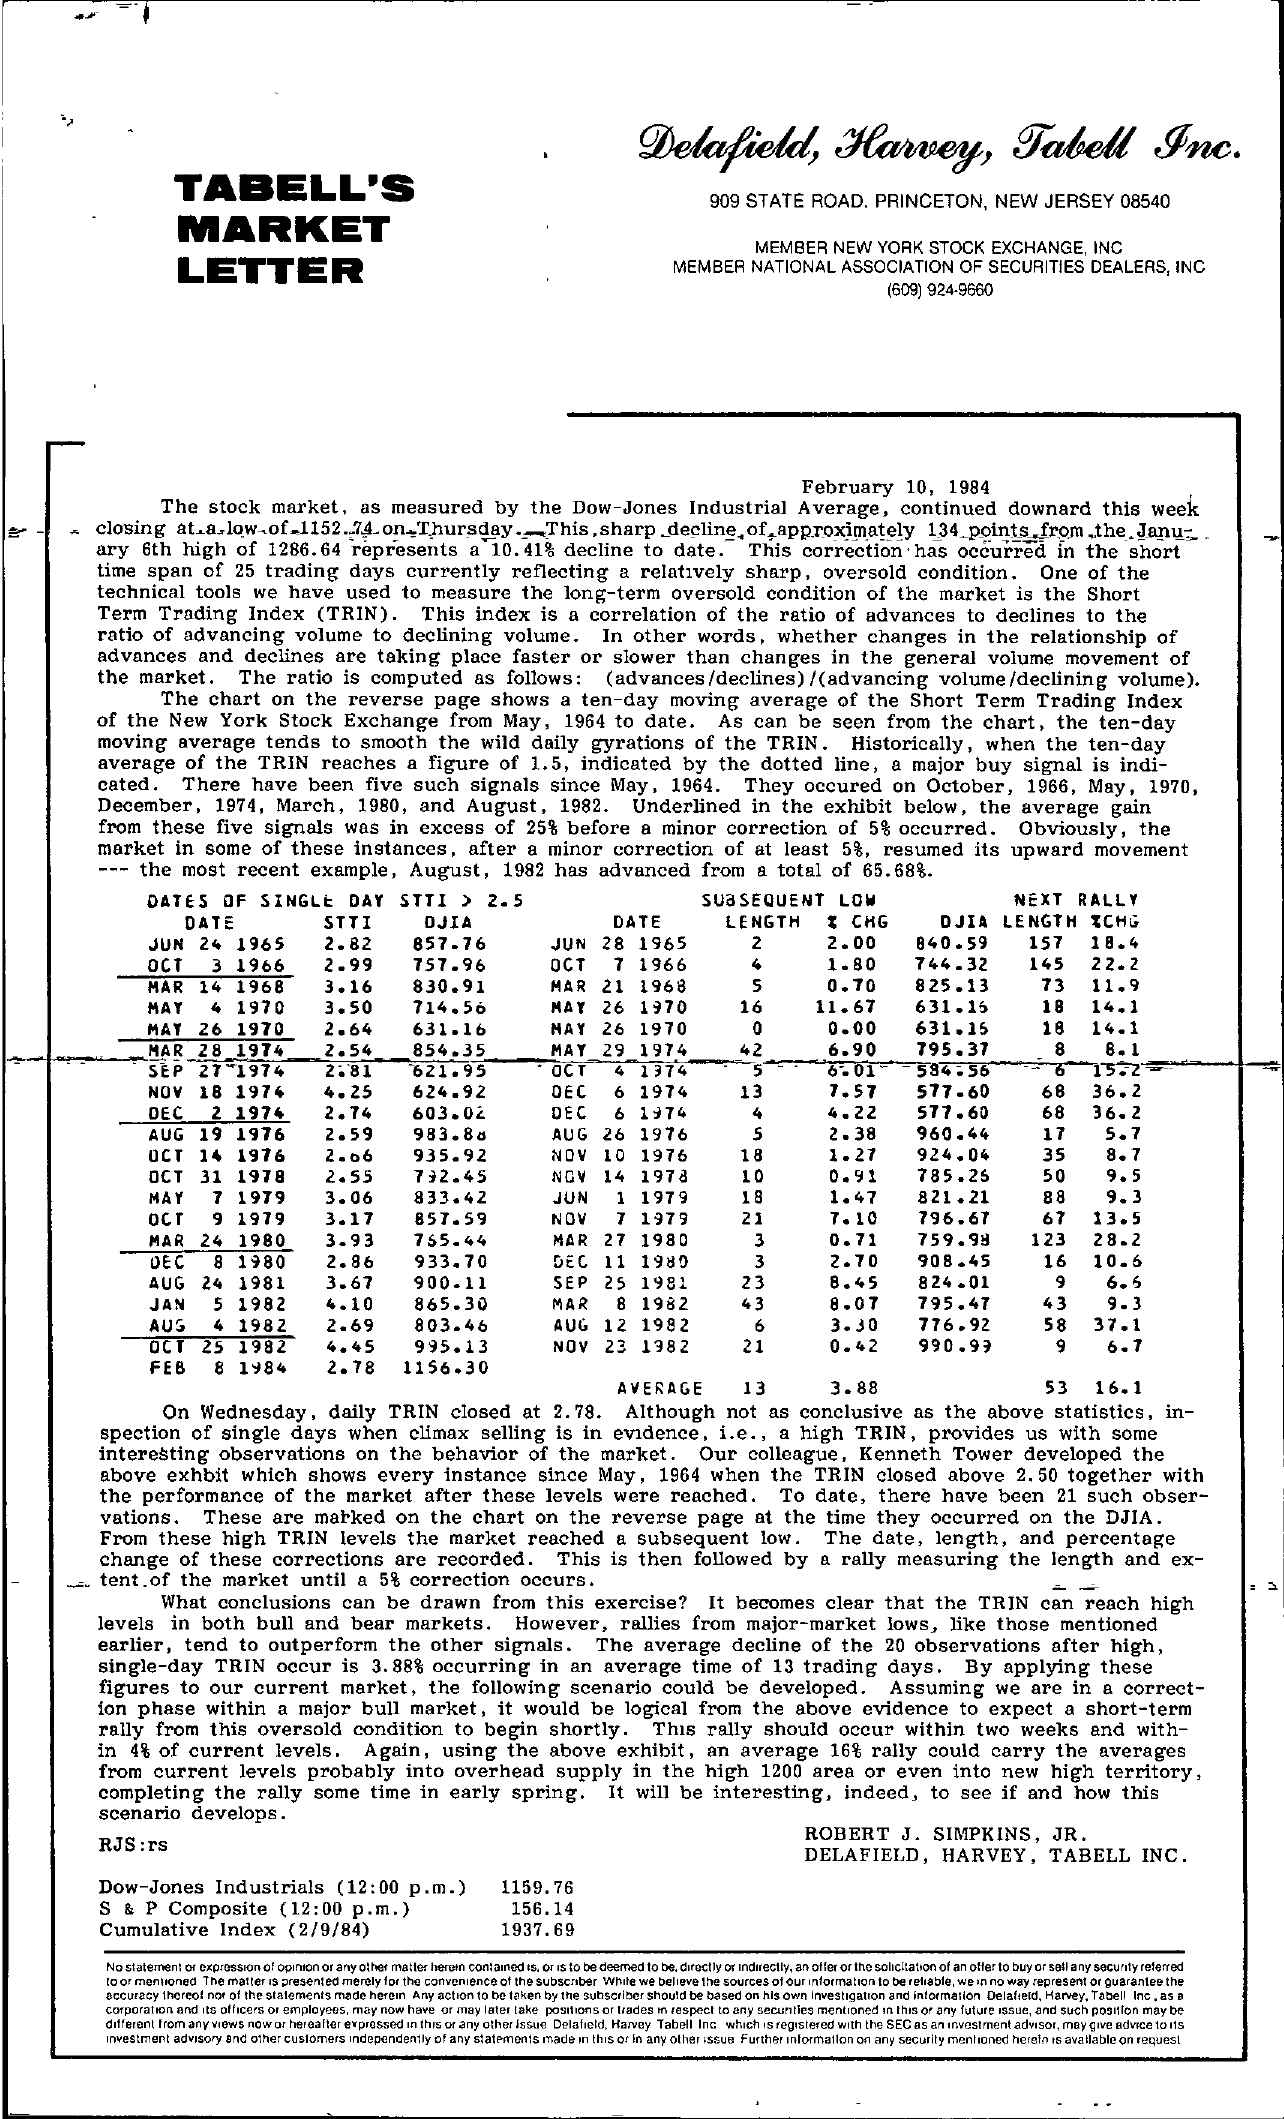 Tabell's Market Letter - February 10, 1984 page 1